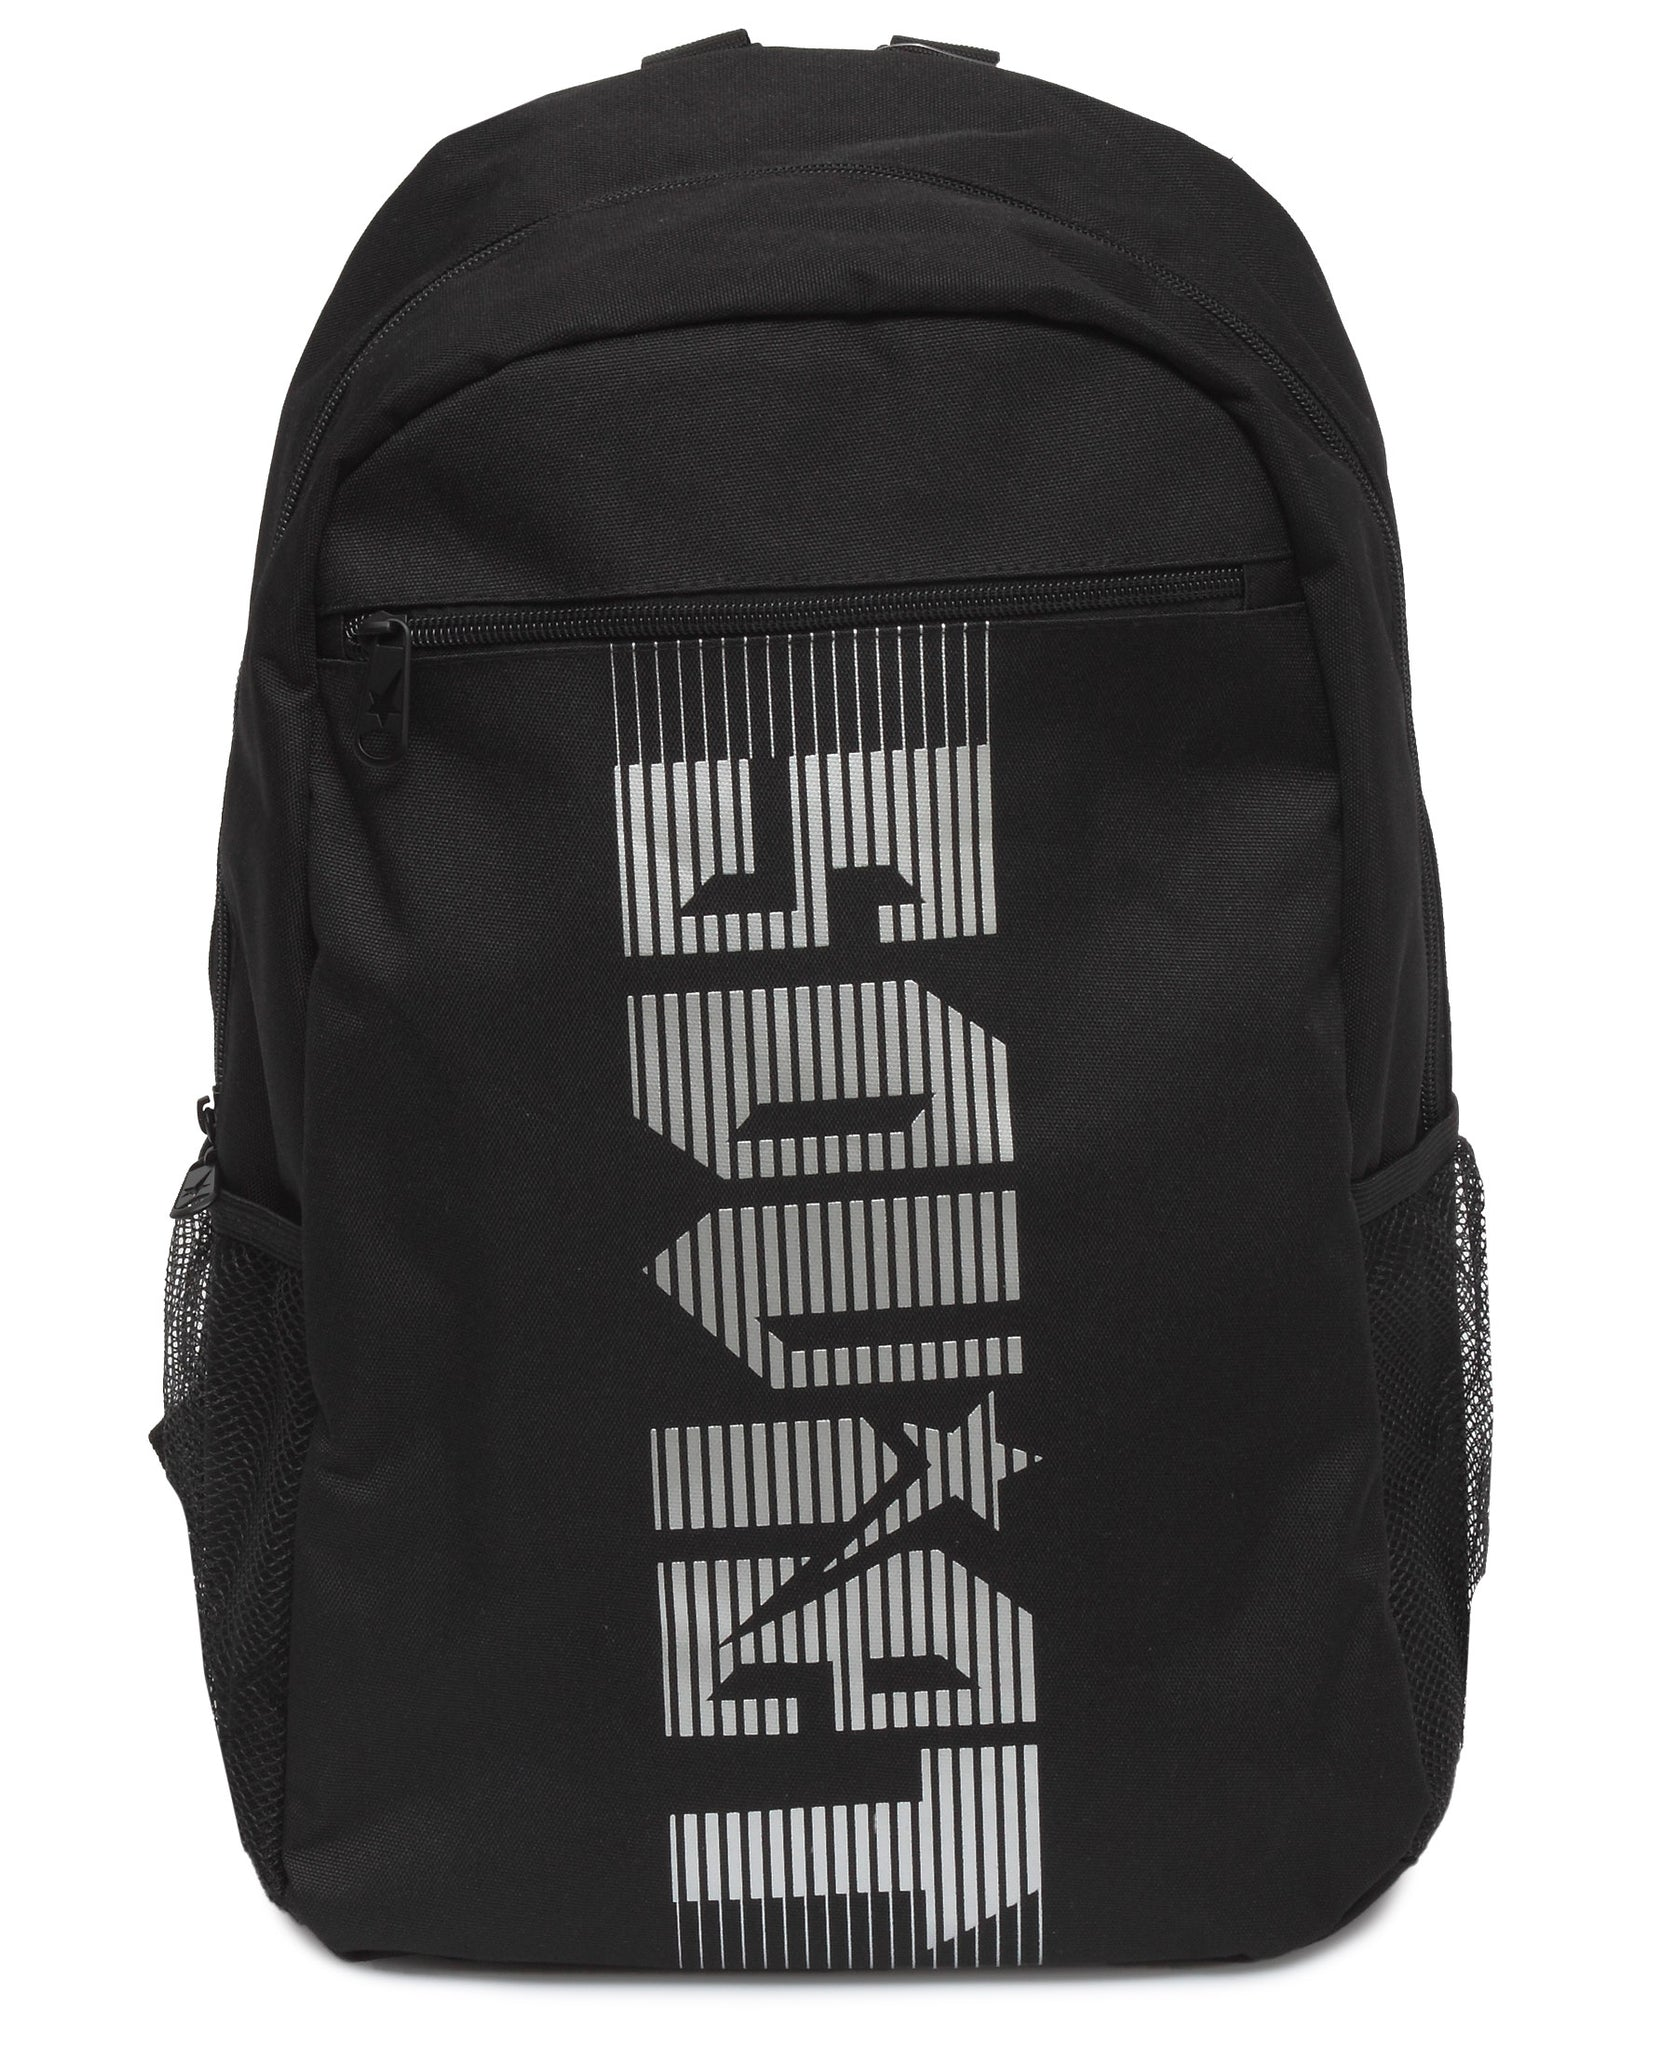 Beavers Backpack - Black-Silver